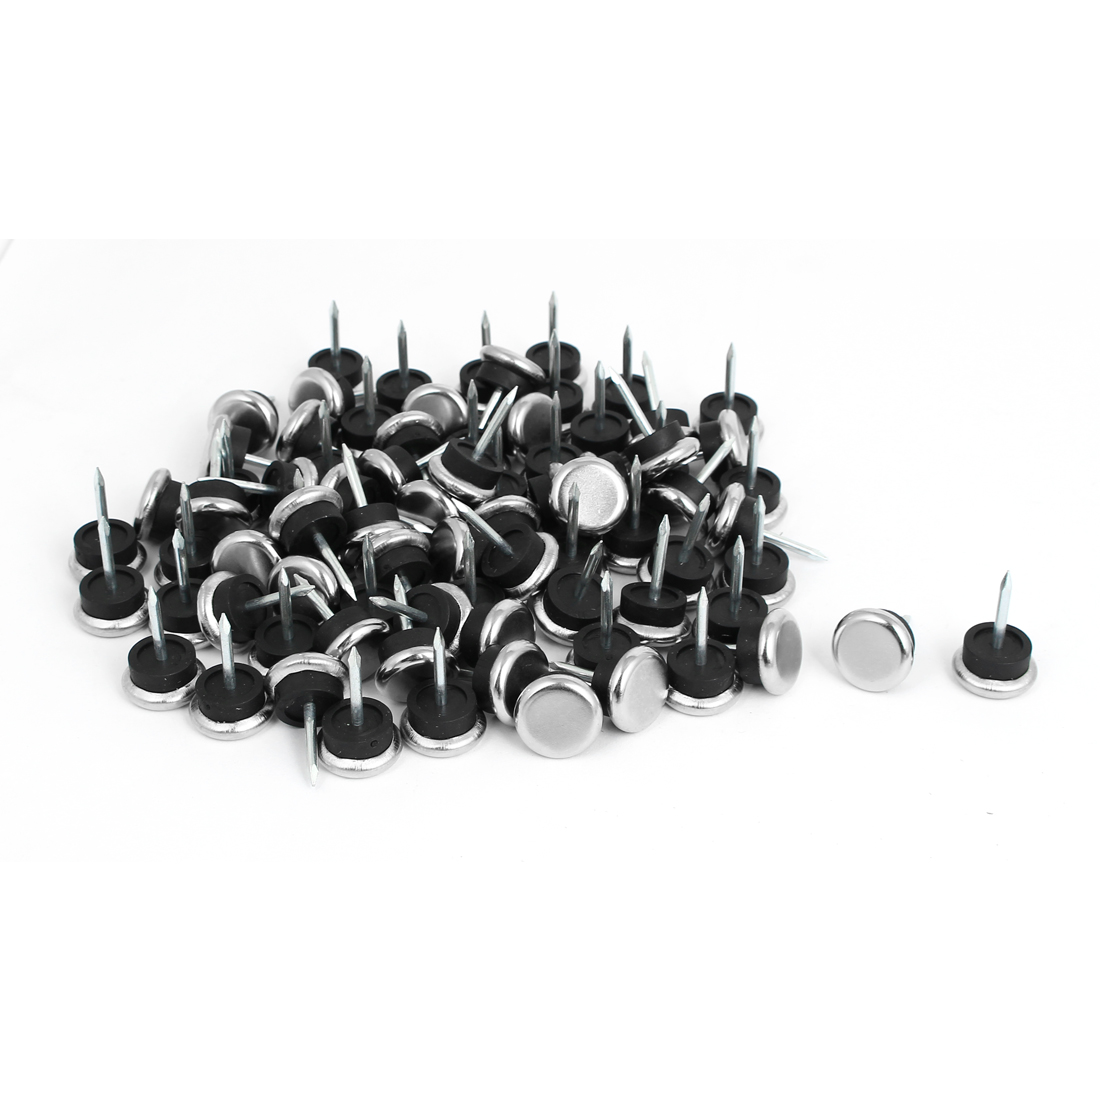 19mm Metal Furniture Chair Table Leg Glide Slide Nail Protector 80 Pcs